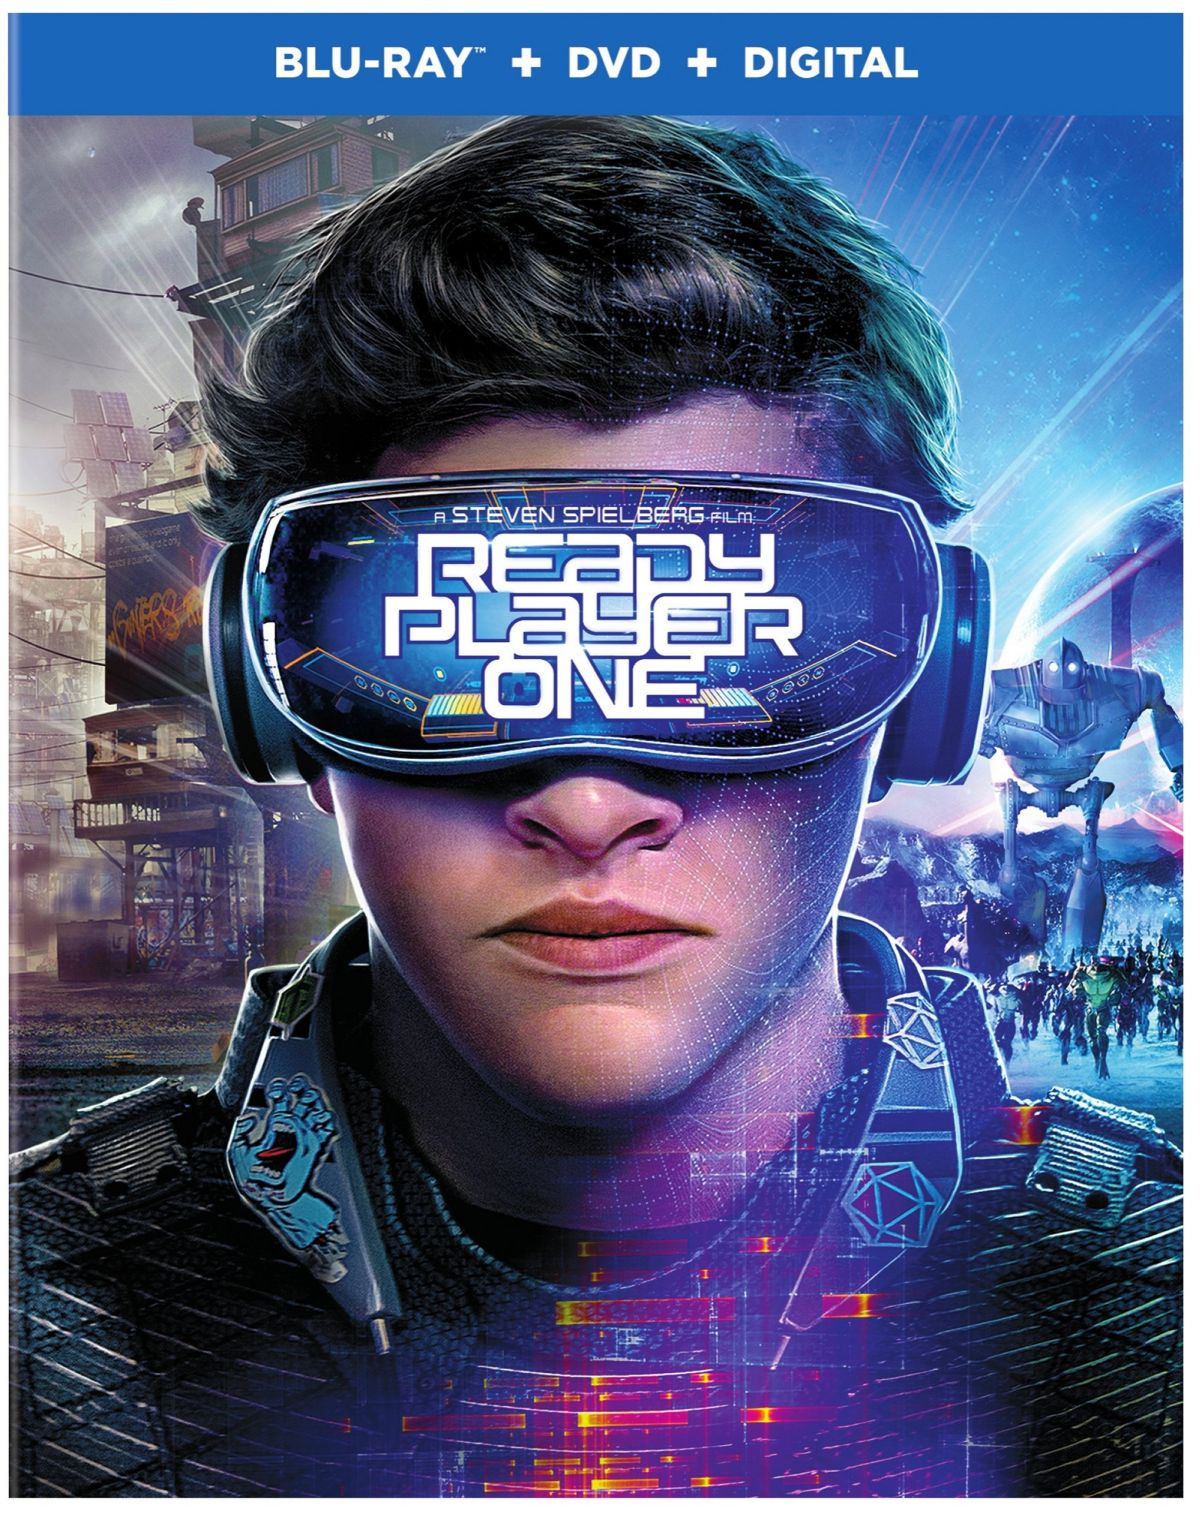 Ready Player One Blu-ray cover